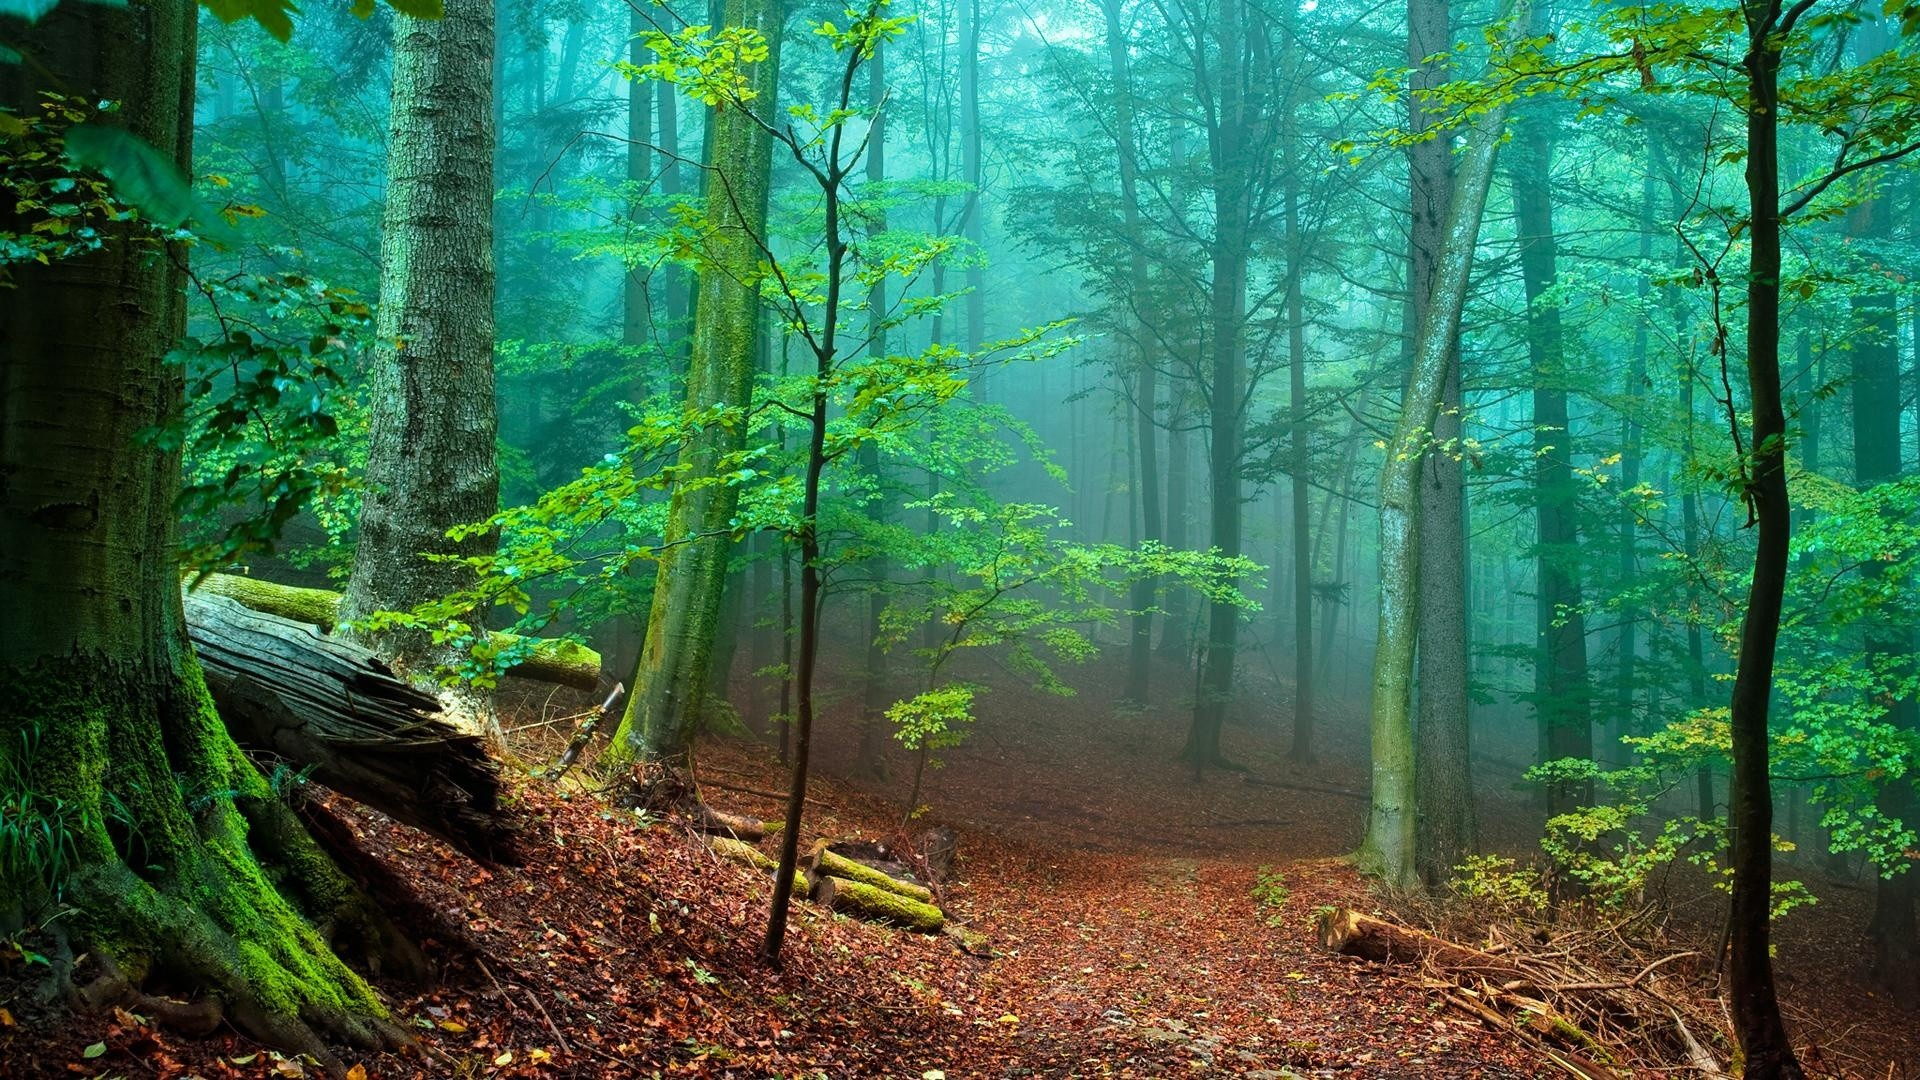 Nature Trees Forest Woods Magic Wallpaper 1920×1080 1080P .